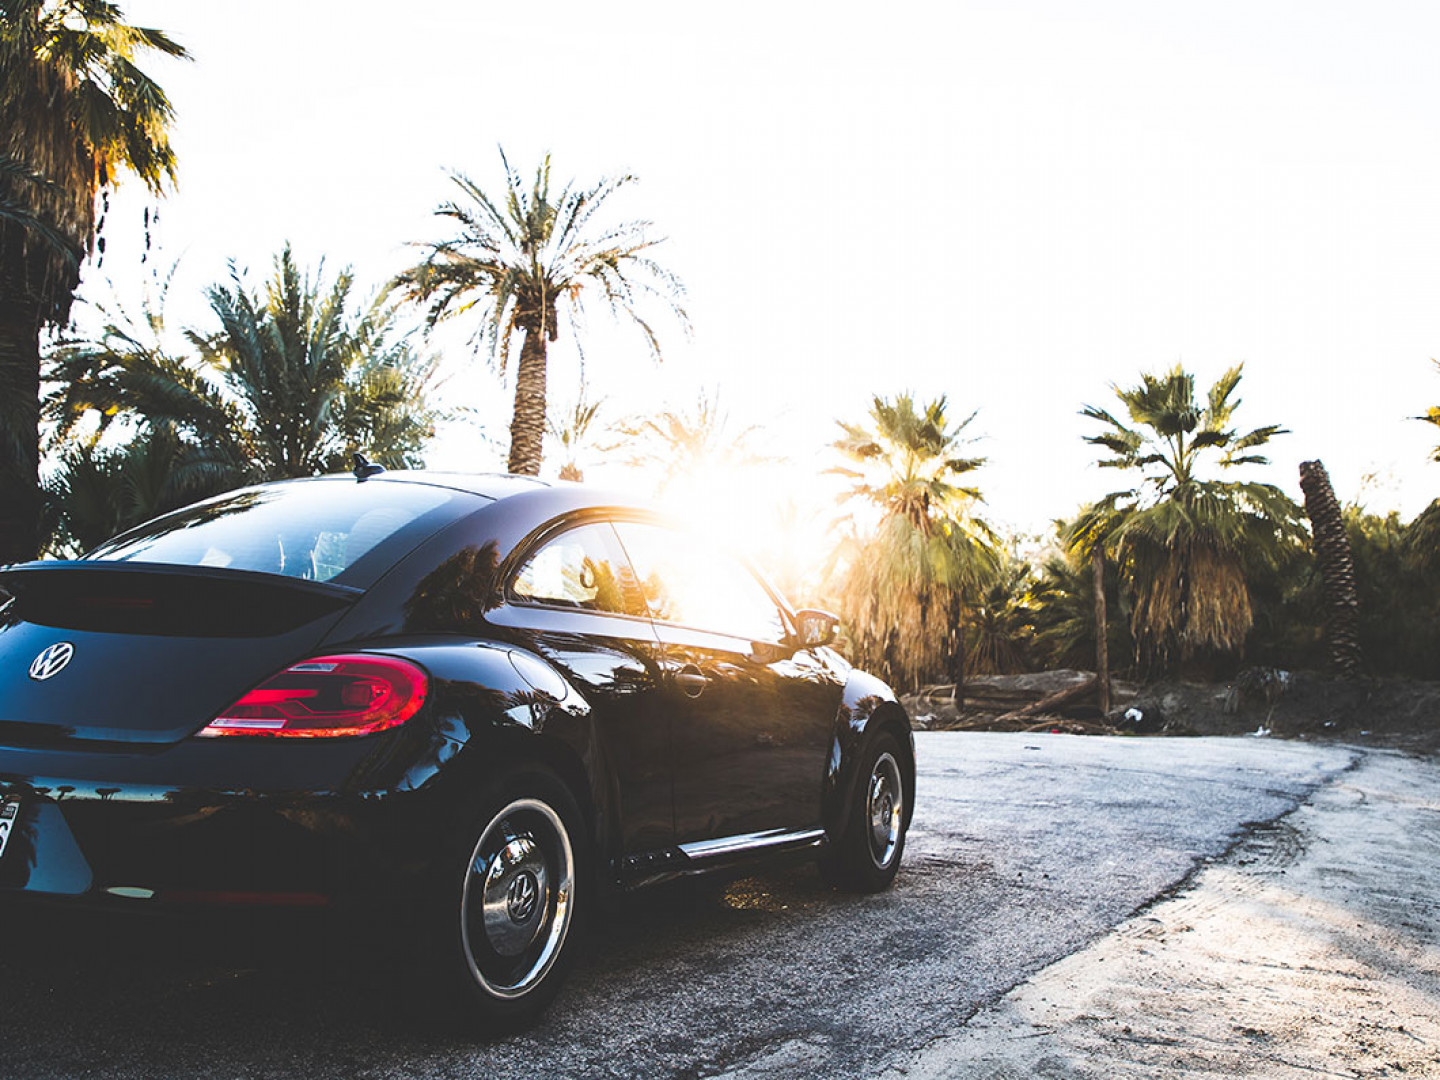 We make it simple to sell a used car in Huntington Beach, CA and Southern California